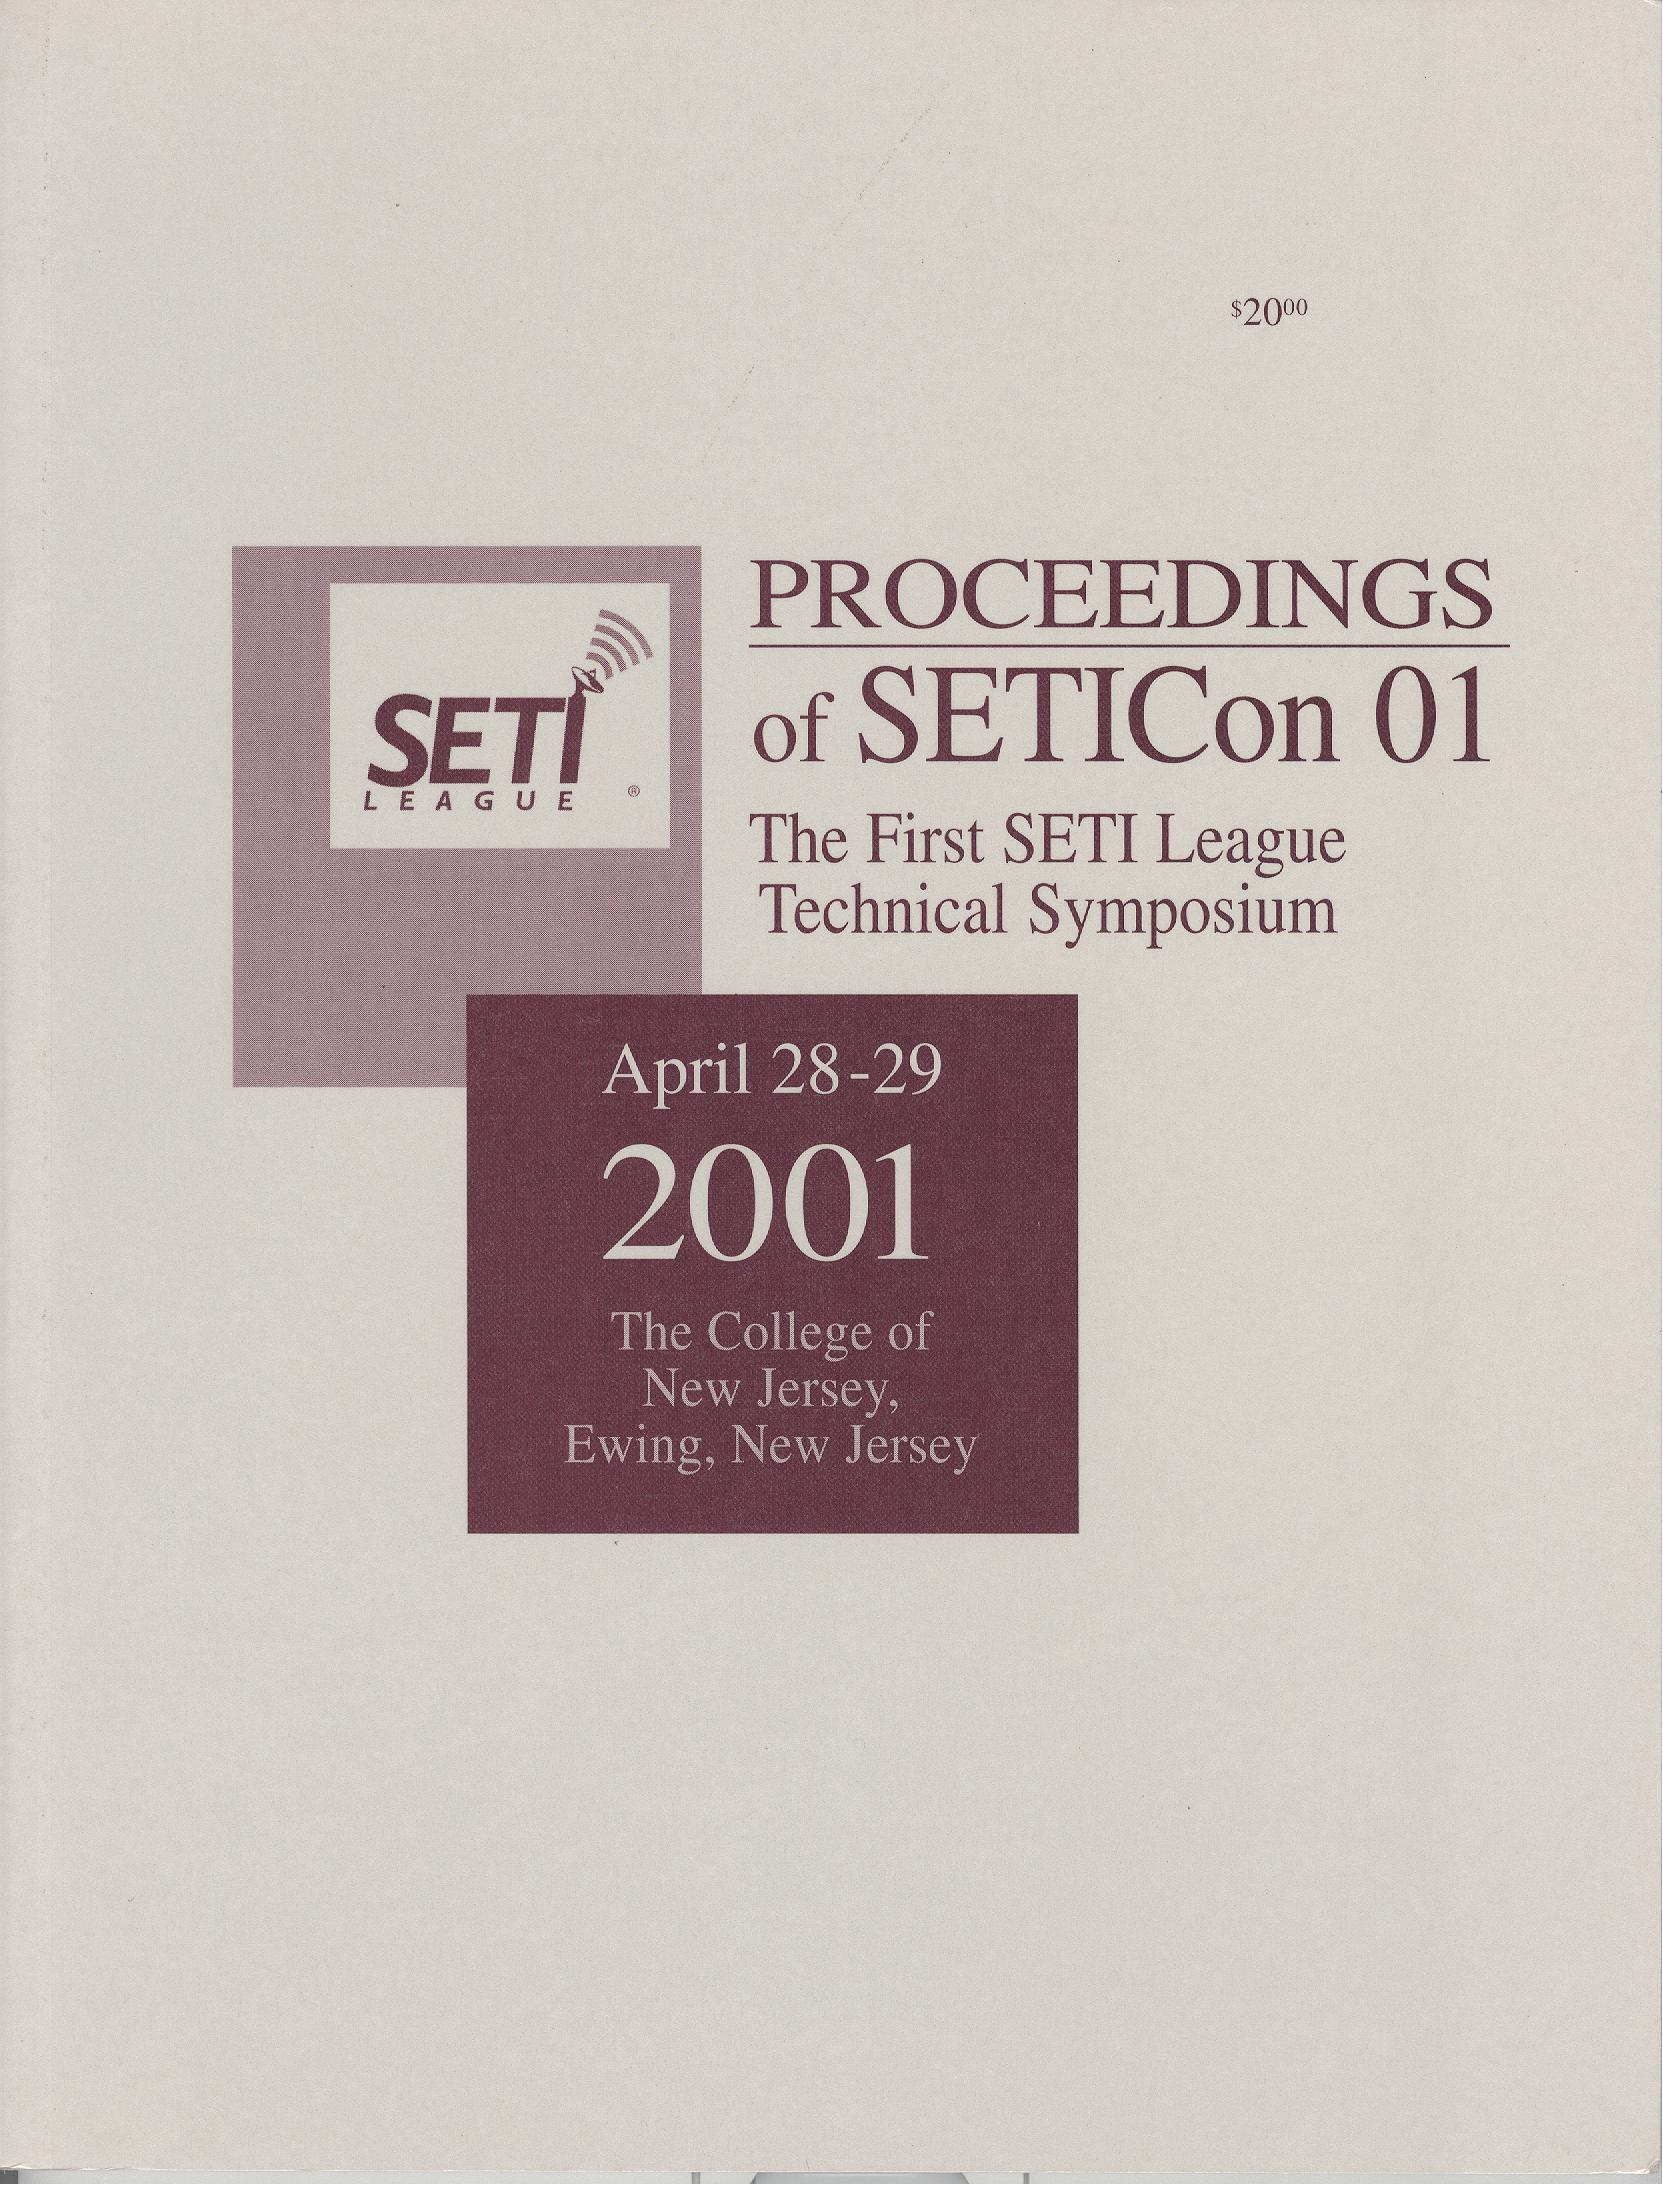 Proceedings of SETICon 01- The First SETI League Technical Symposium 2001